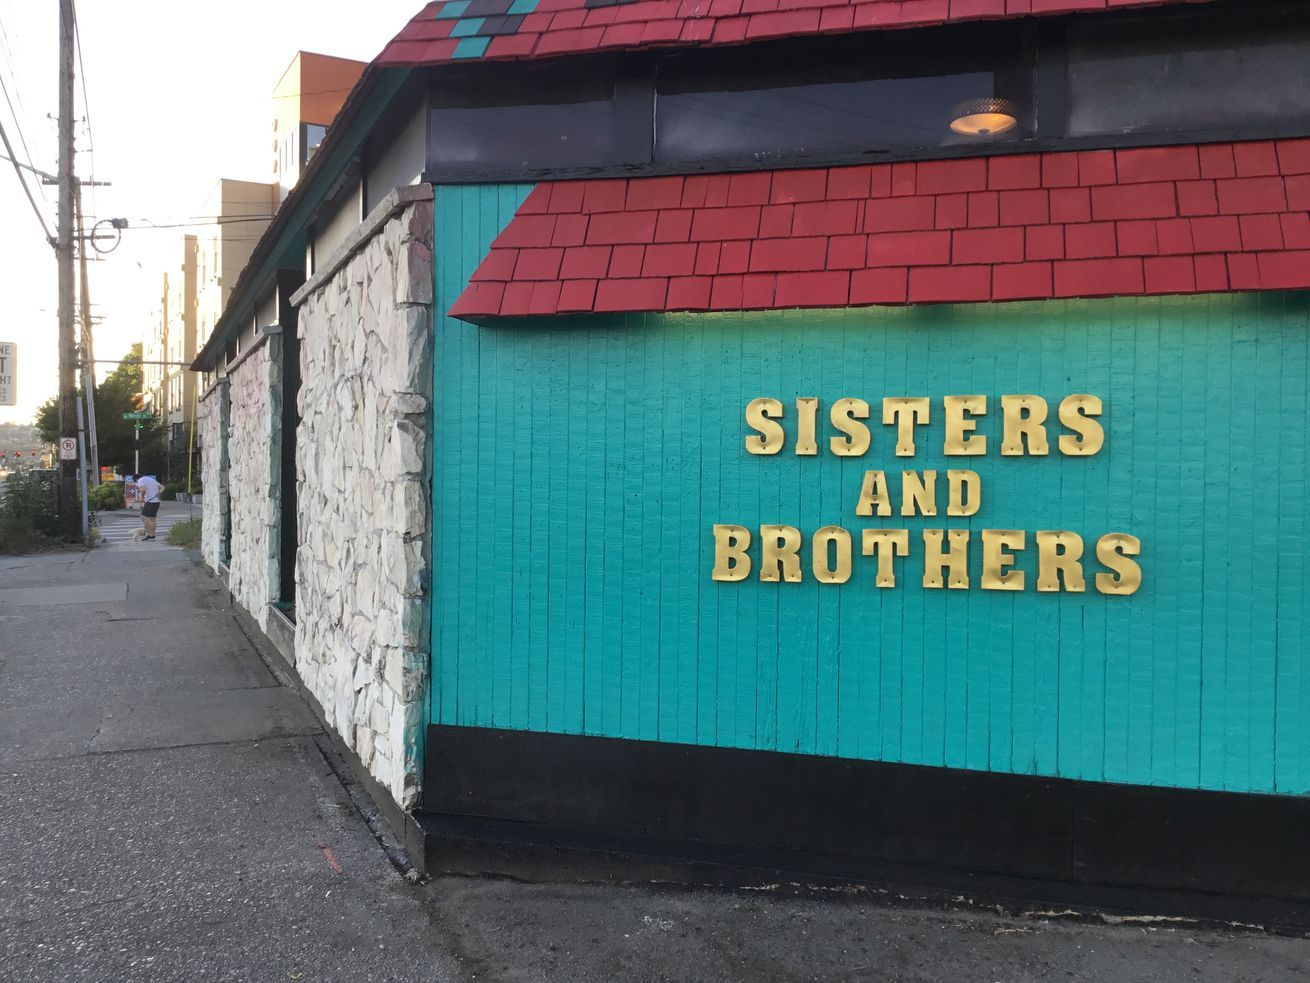 Nashville Hot Chicken Favorite Sisters And Brothers Debuts New Location Next Week In 2020 Nashville Hot Nashville Hot Chicken Nashville